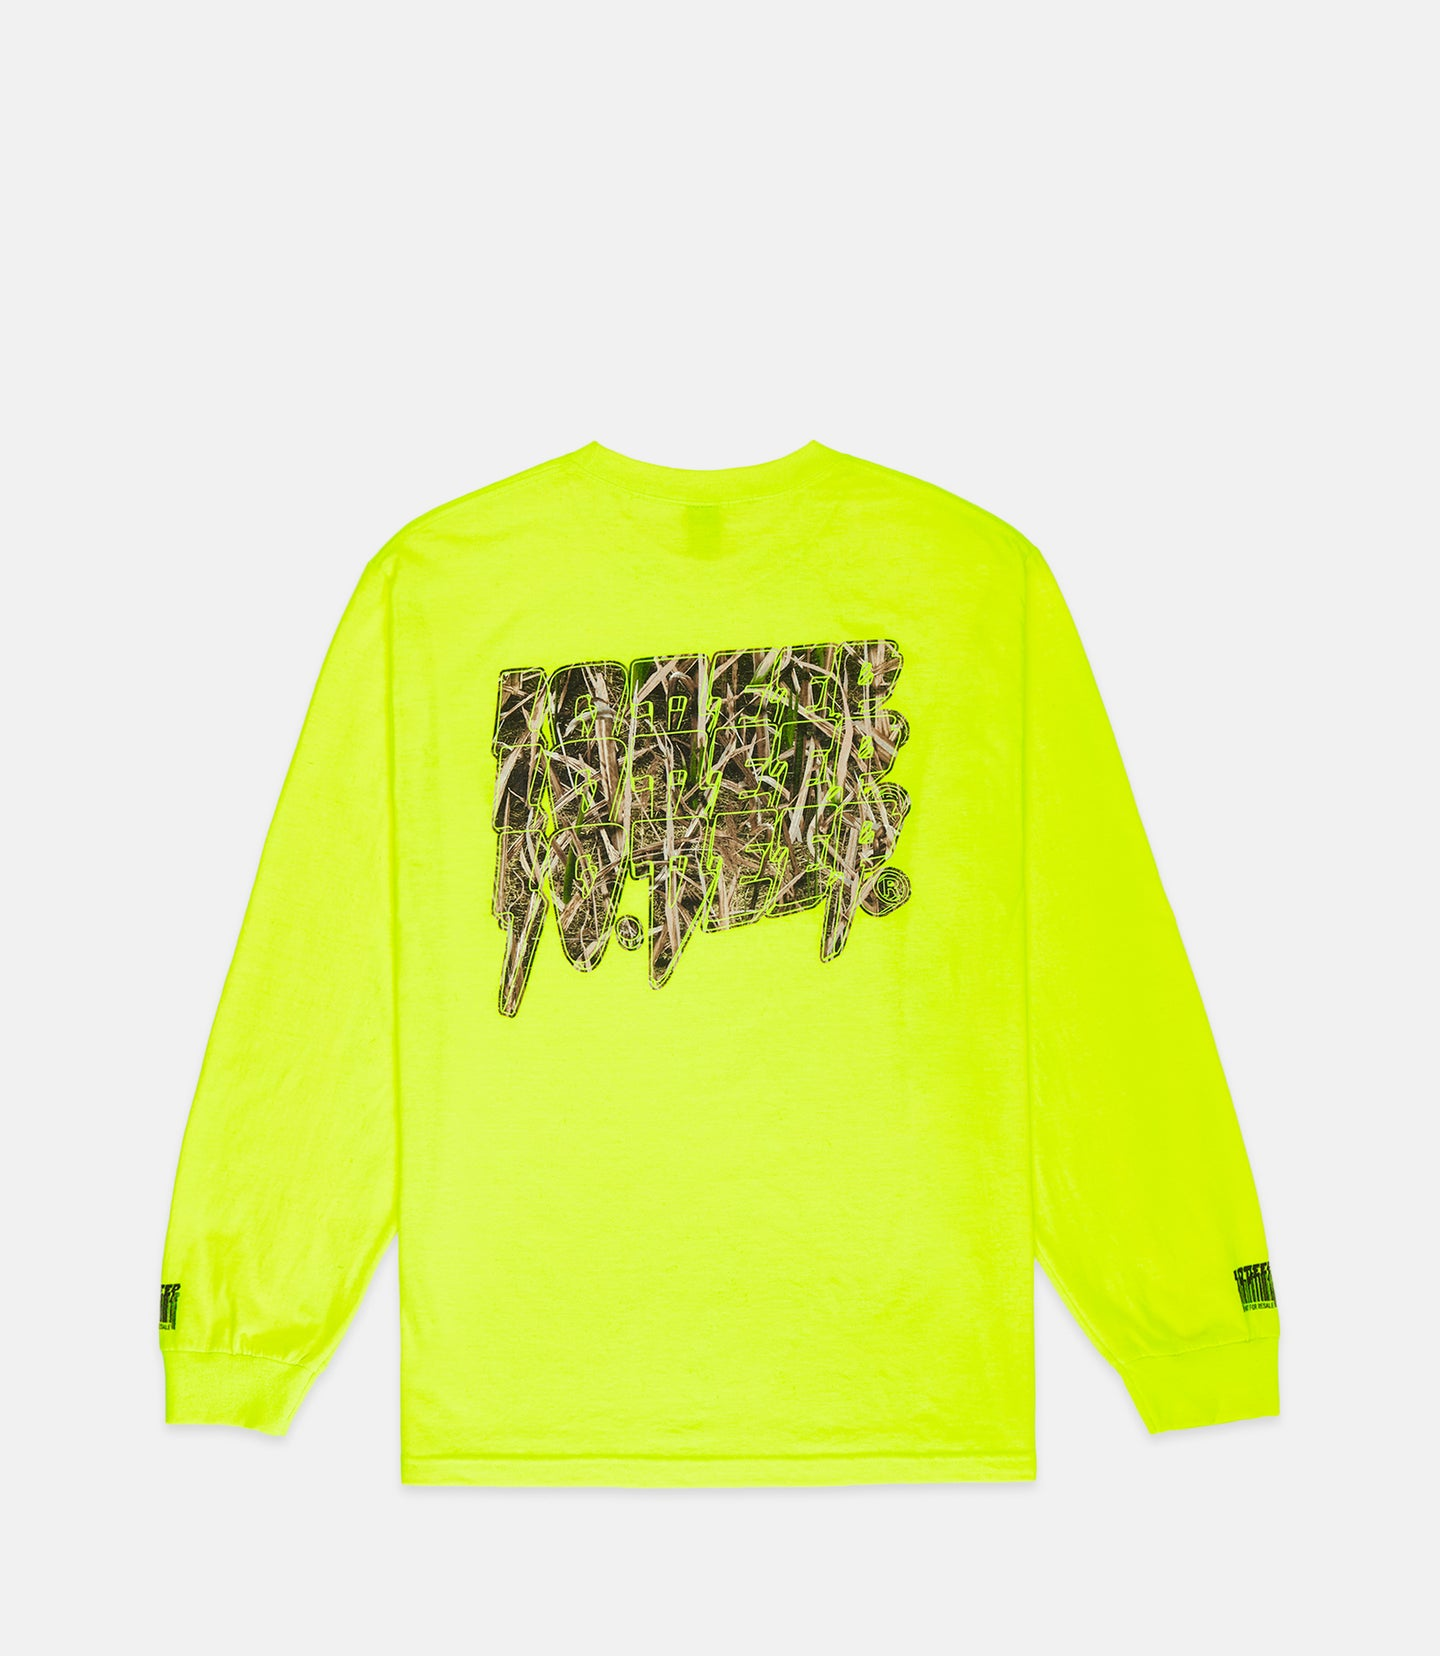 DIGITAL DIV L/S TEE - DAY GLO